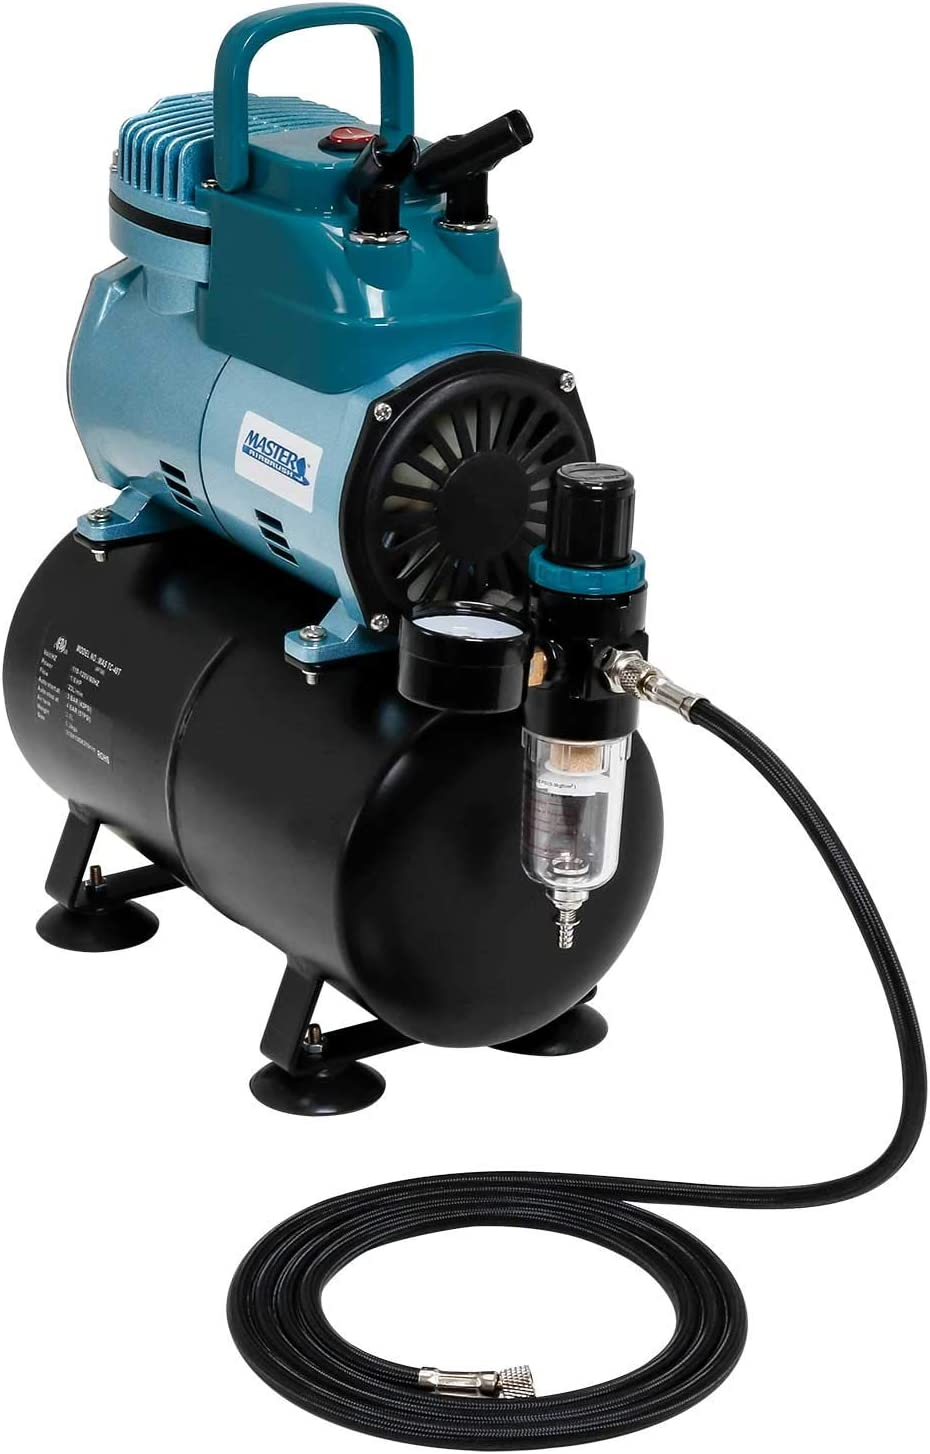 Master Airbrush Model TC-40T Cool Runner Airbrush Compressor